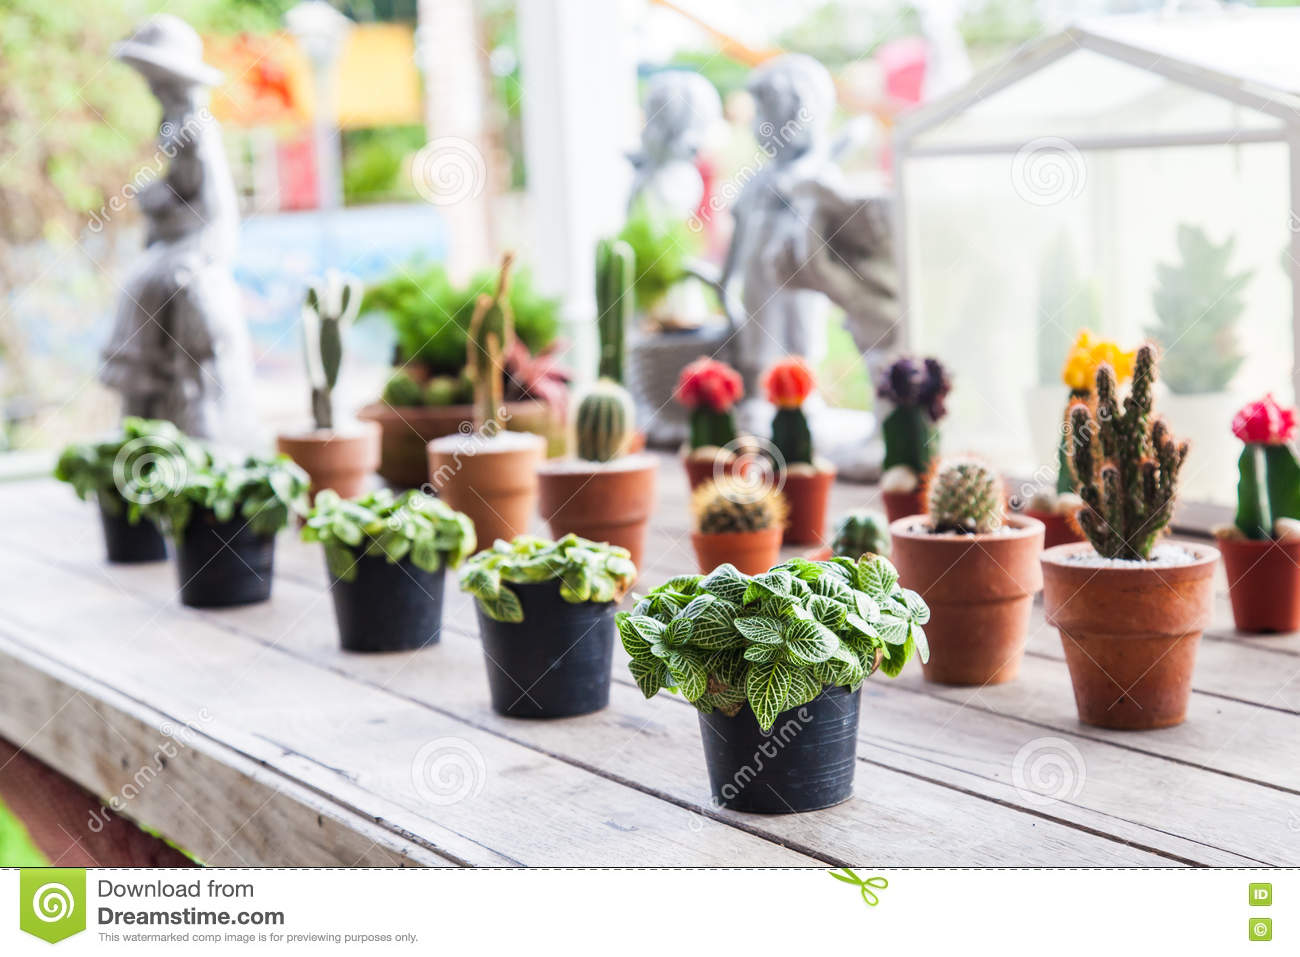 Small Different Types Of Cactus Plants In A Row On Wooden